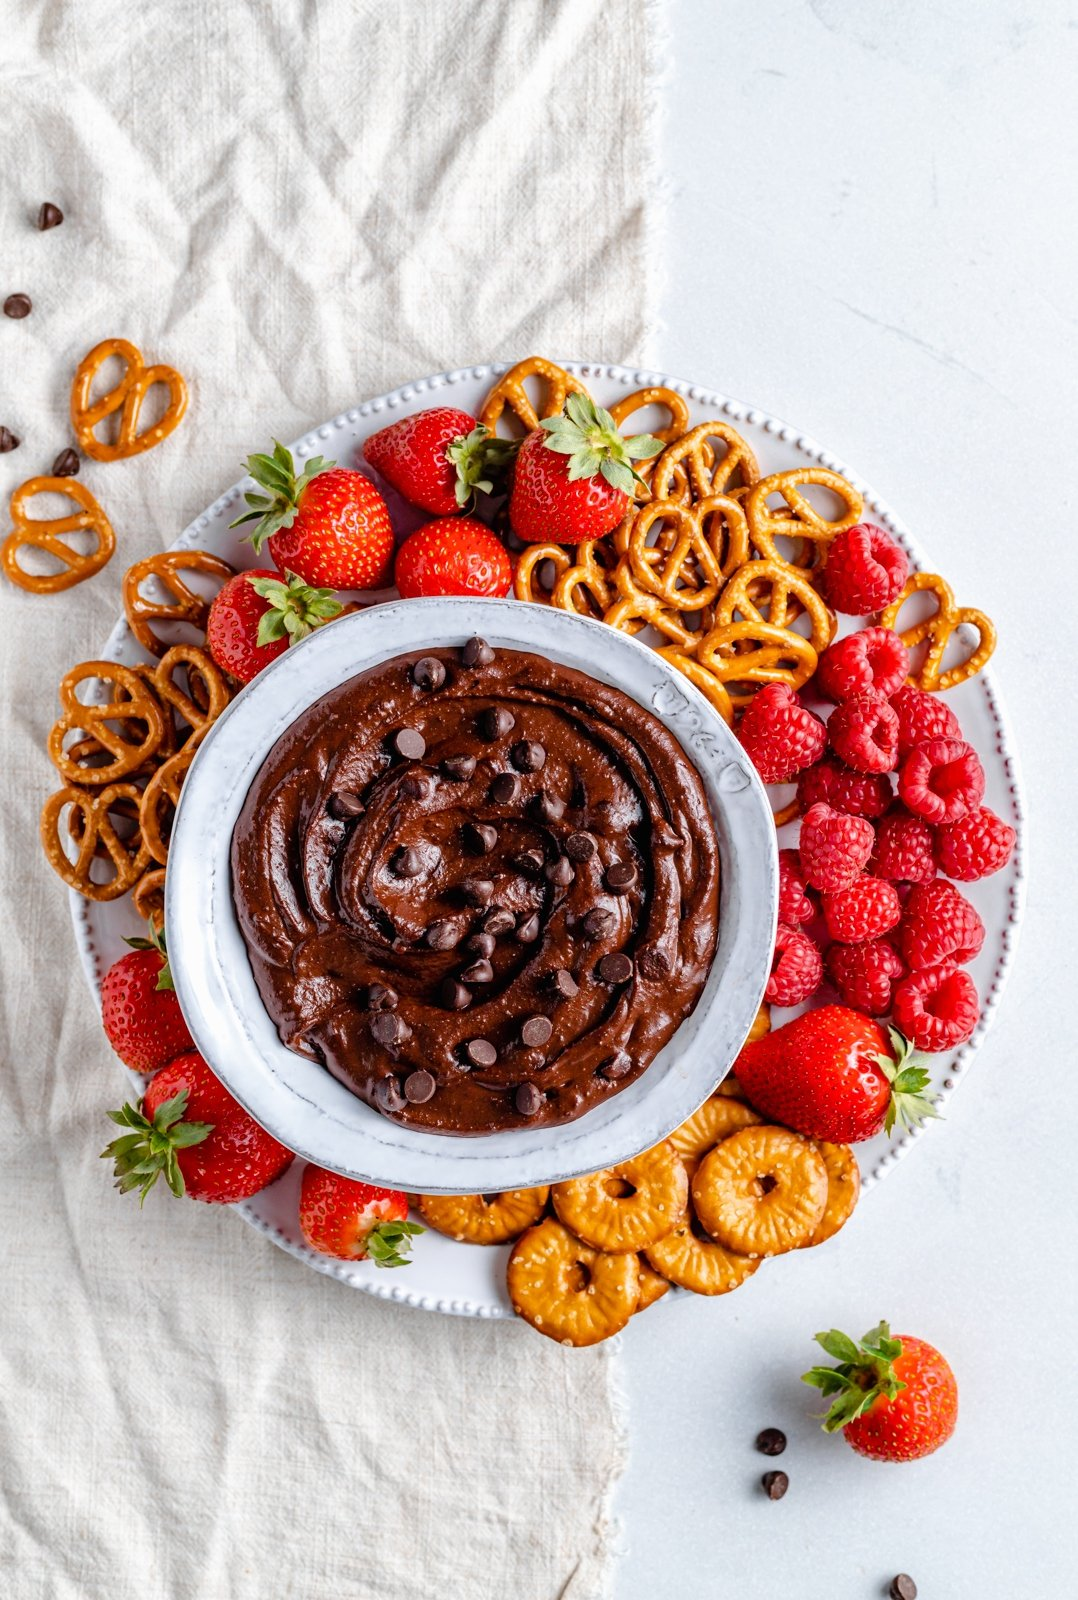 easy chocolate hummus in a bowl surrounded by berries and pretzels